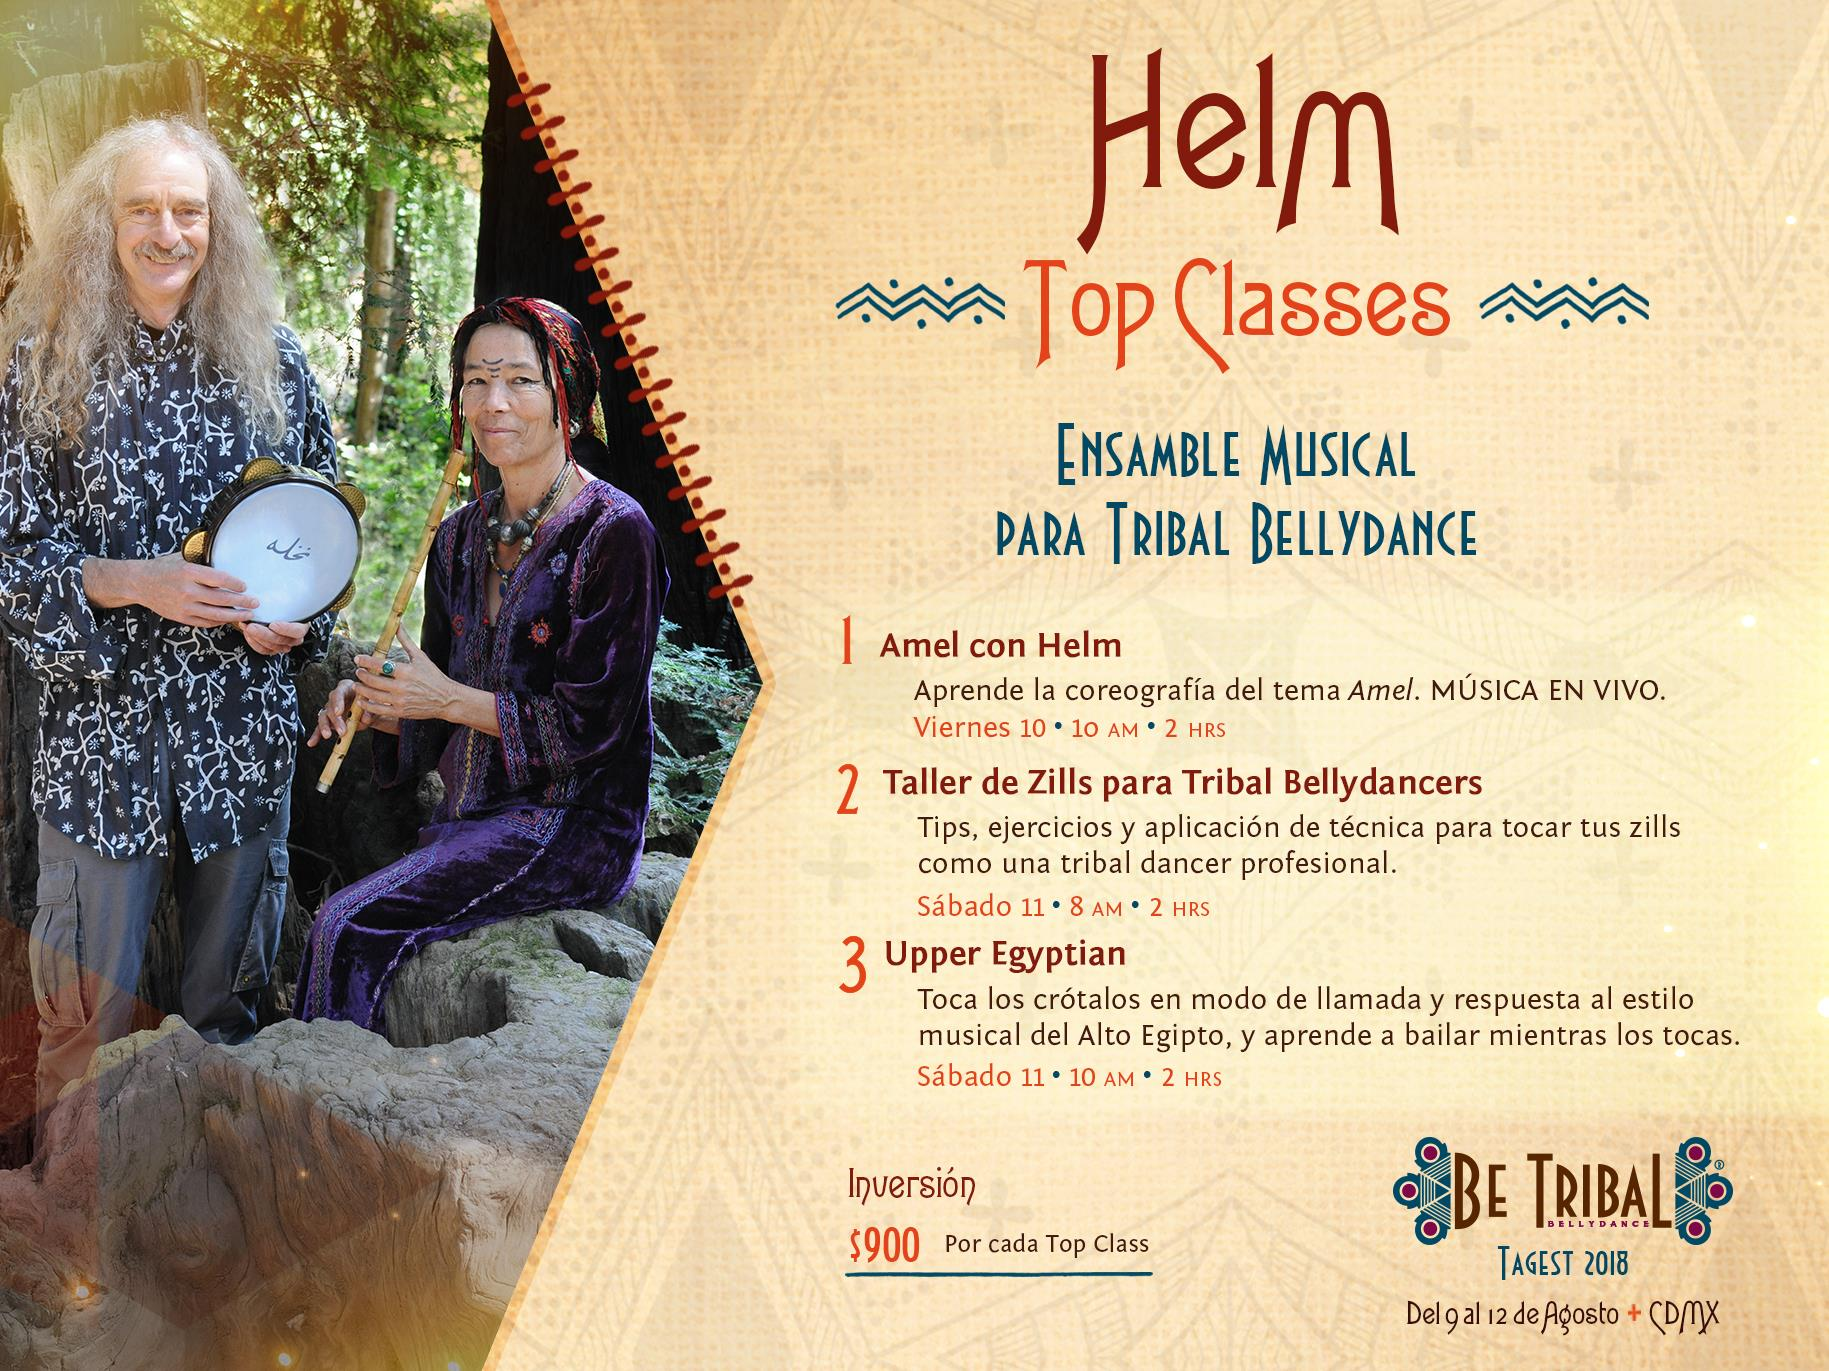 Top Classes Helm